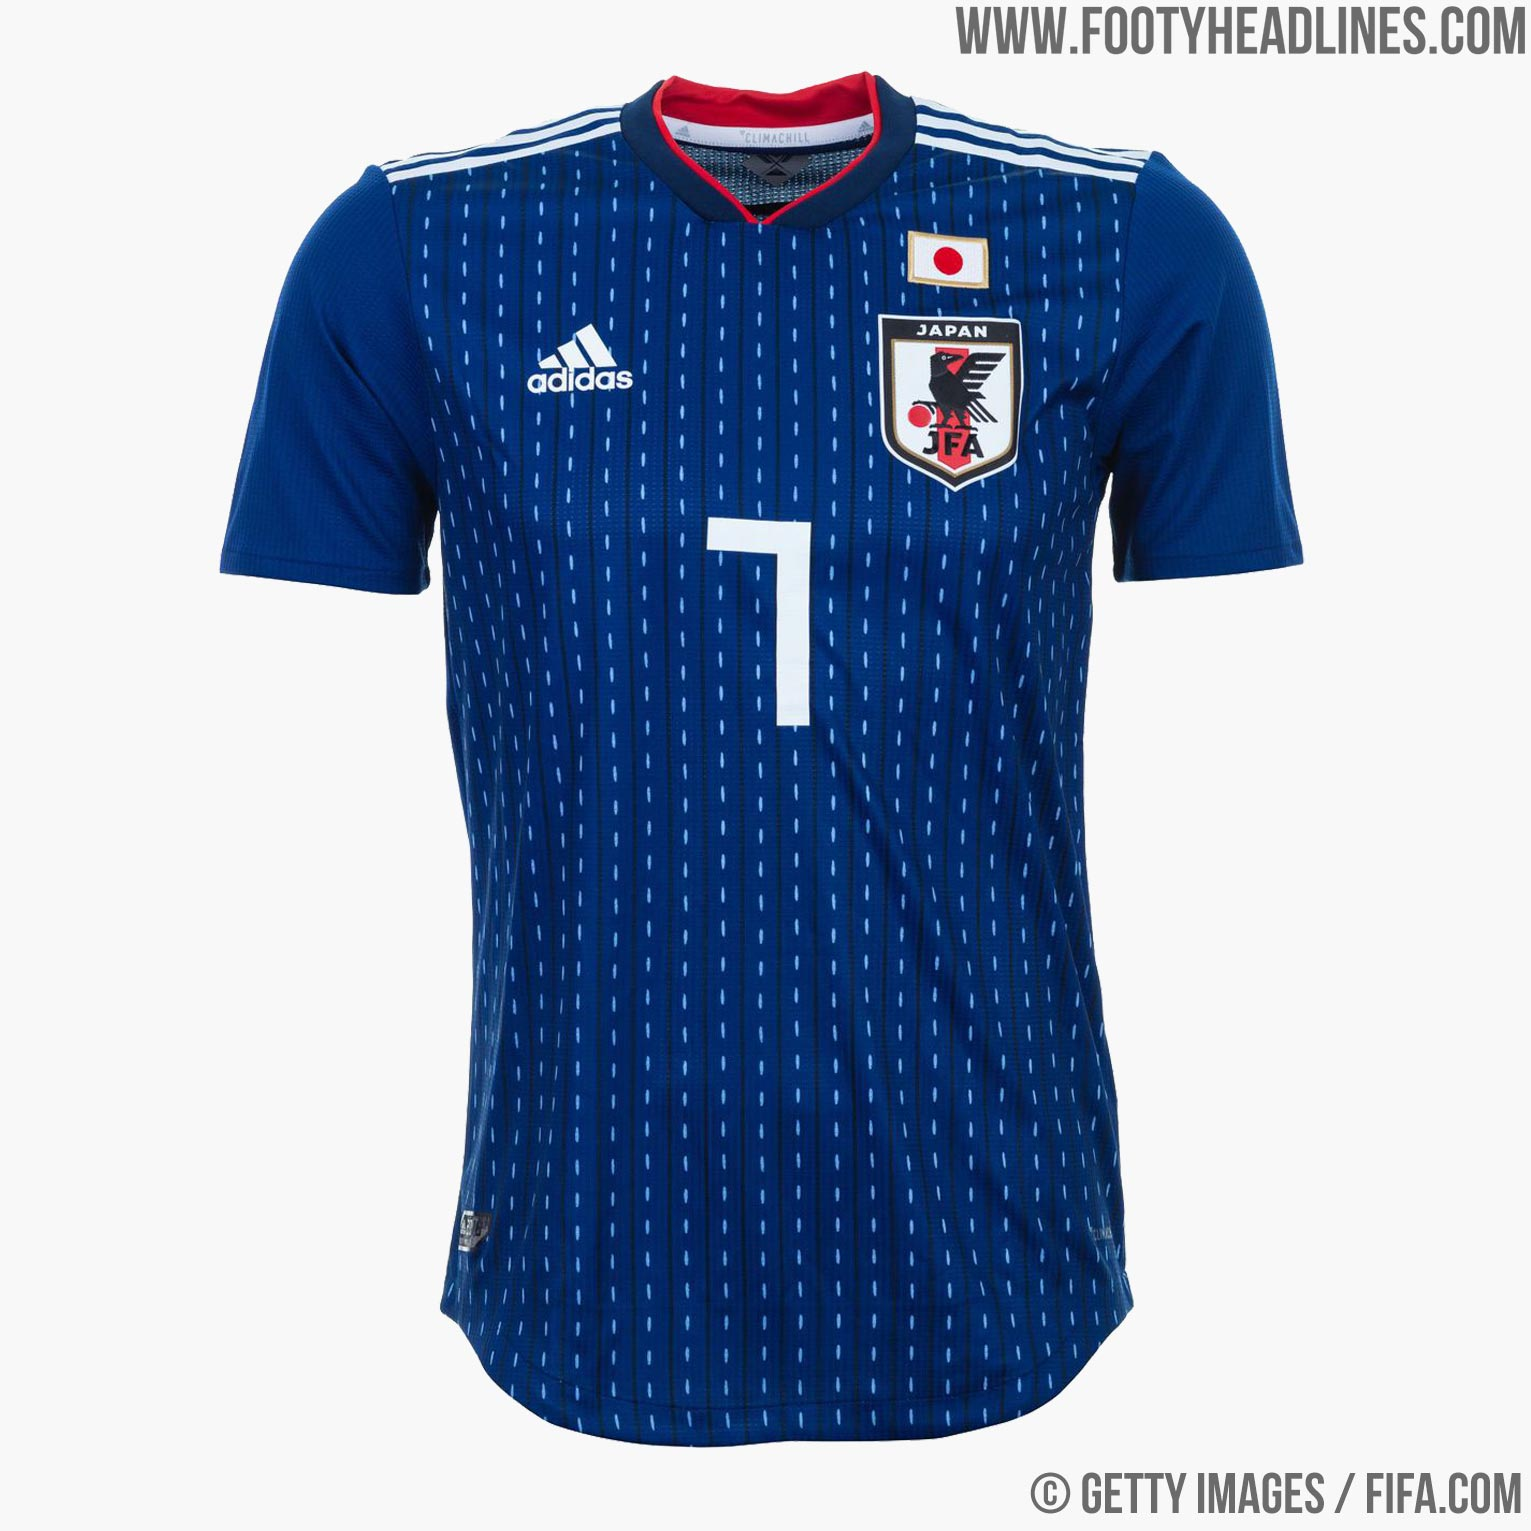 Japan 2018 World Cup Home Kit Buy now. Free worldwide delivery on all orders bce77d0c4